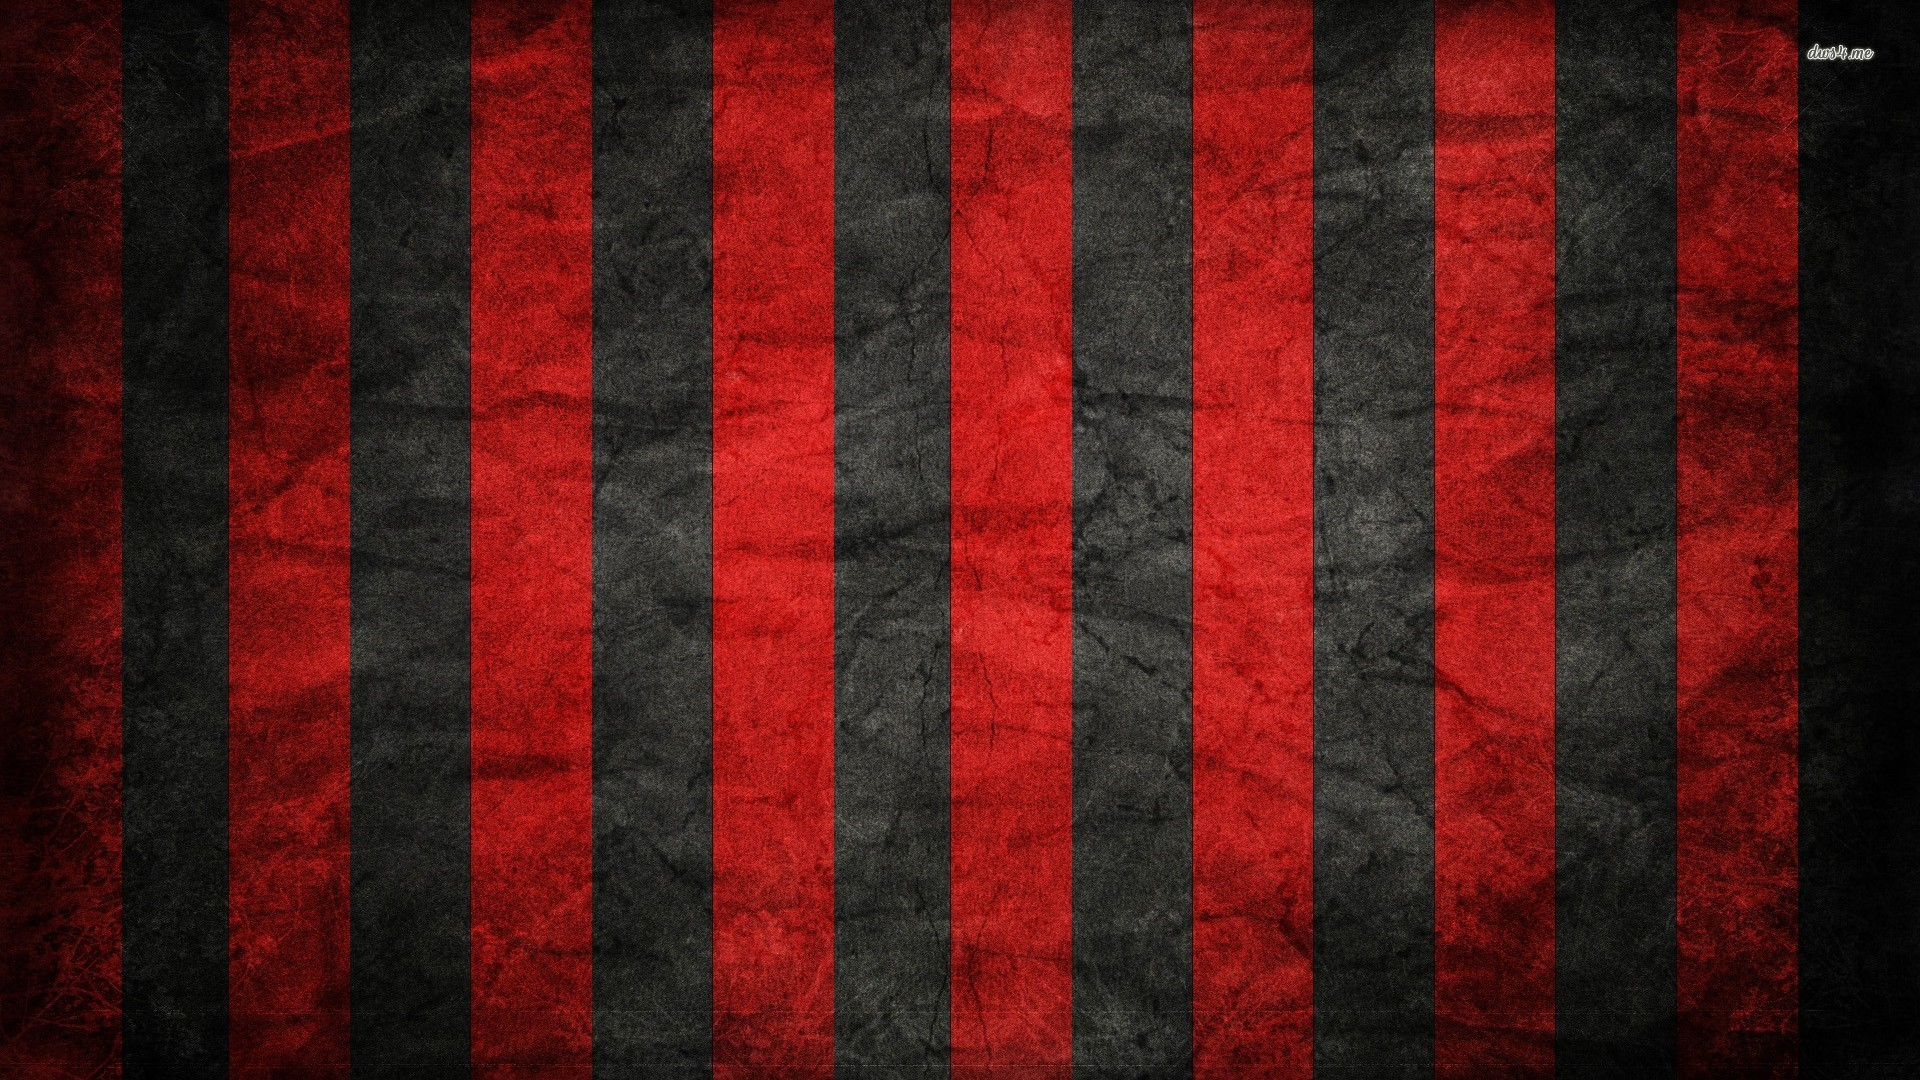 Red Black And Silver Wallpaper 15 Cool Hd Wallpaper ...